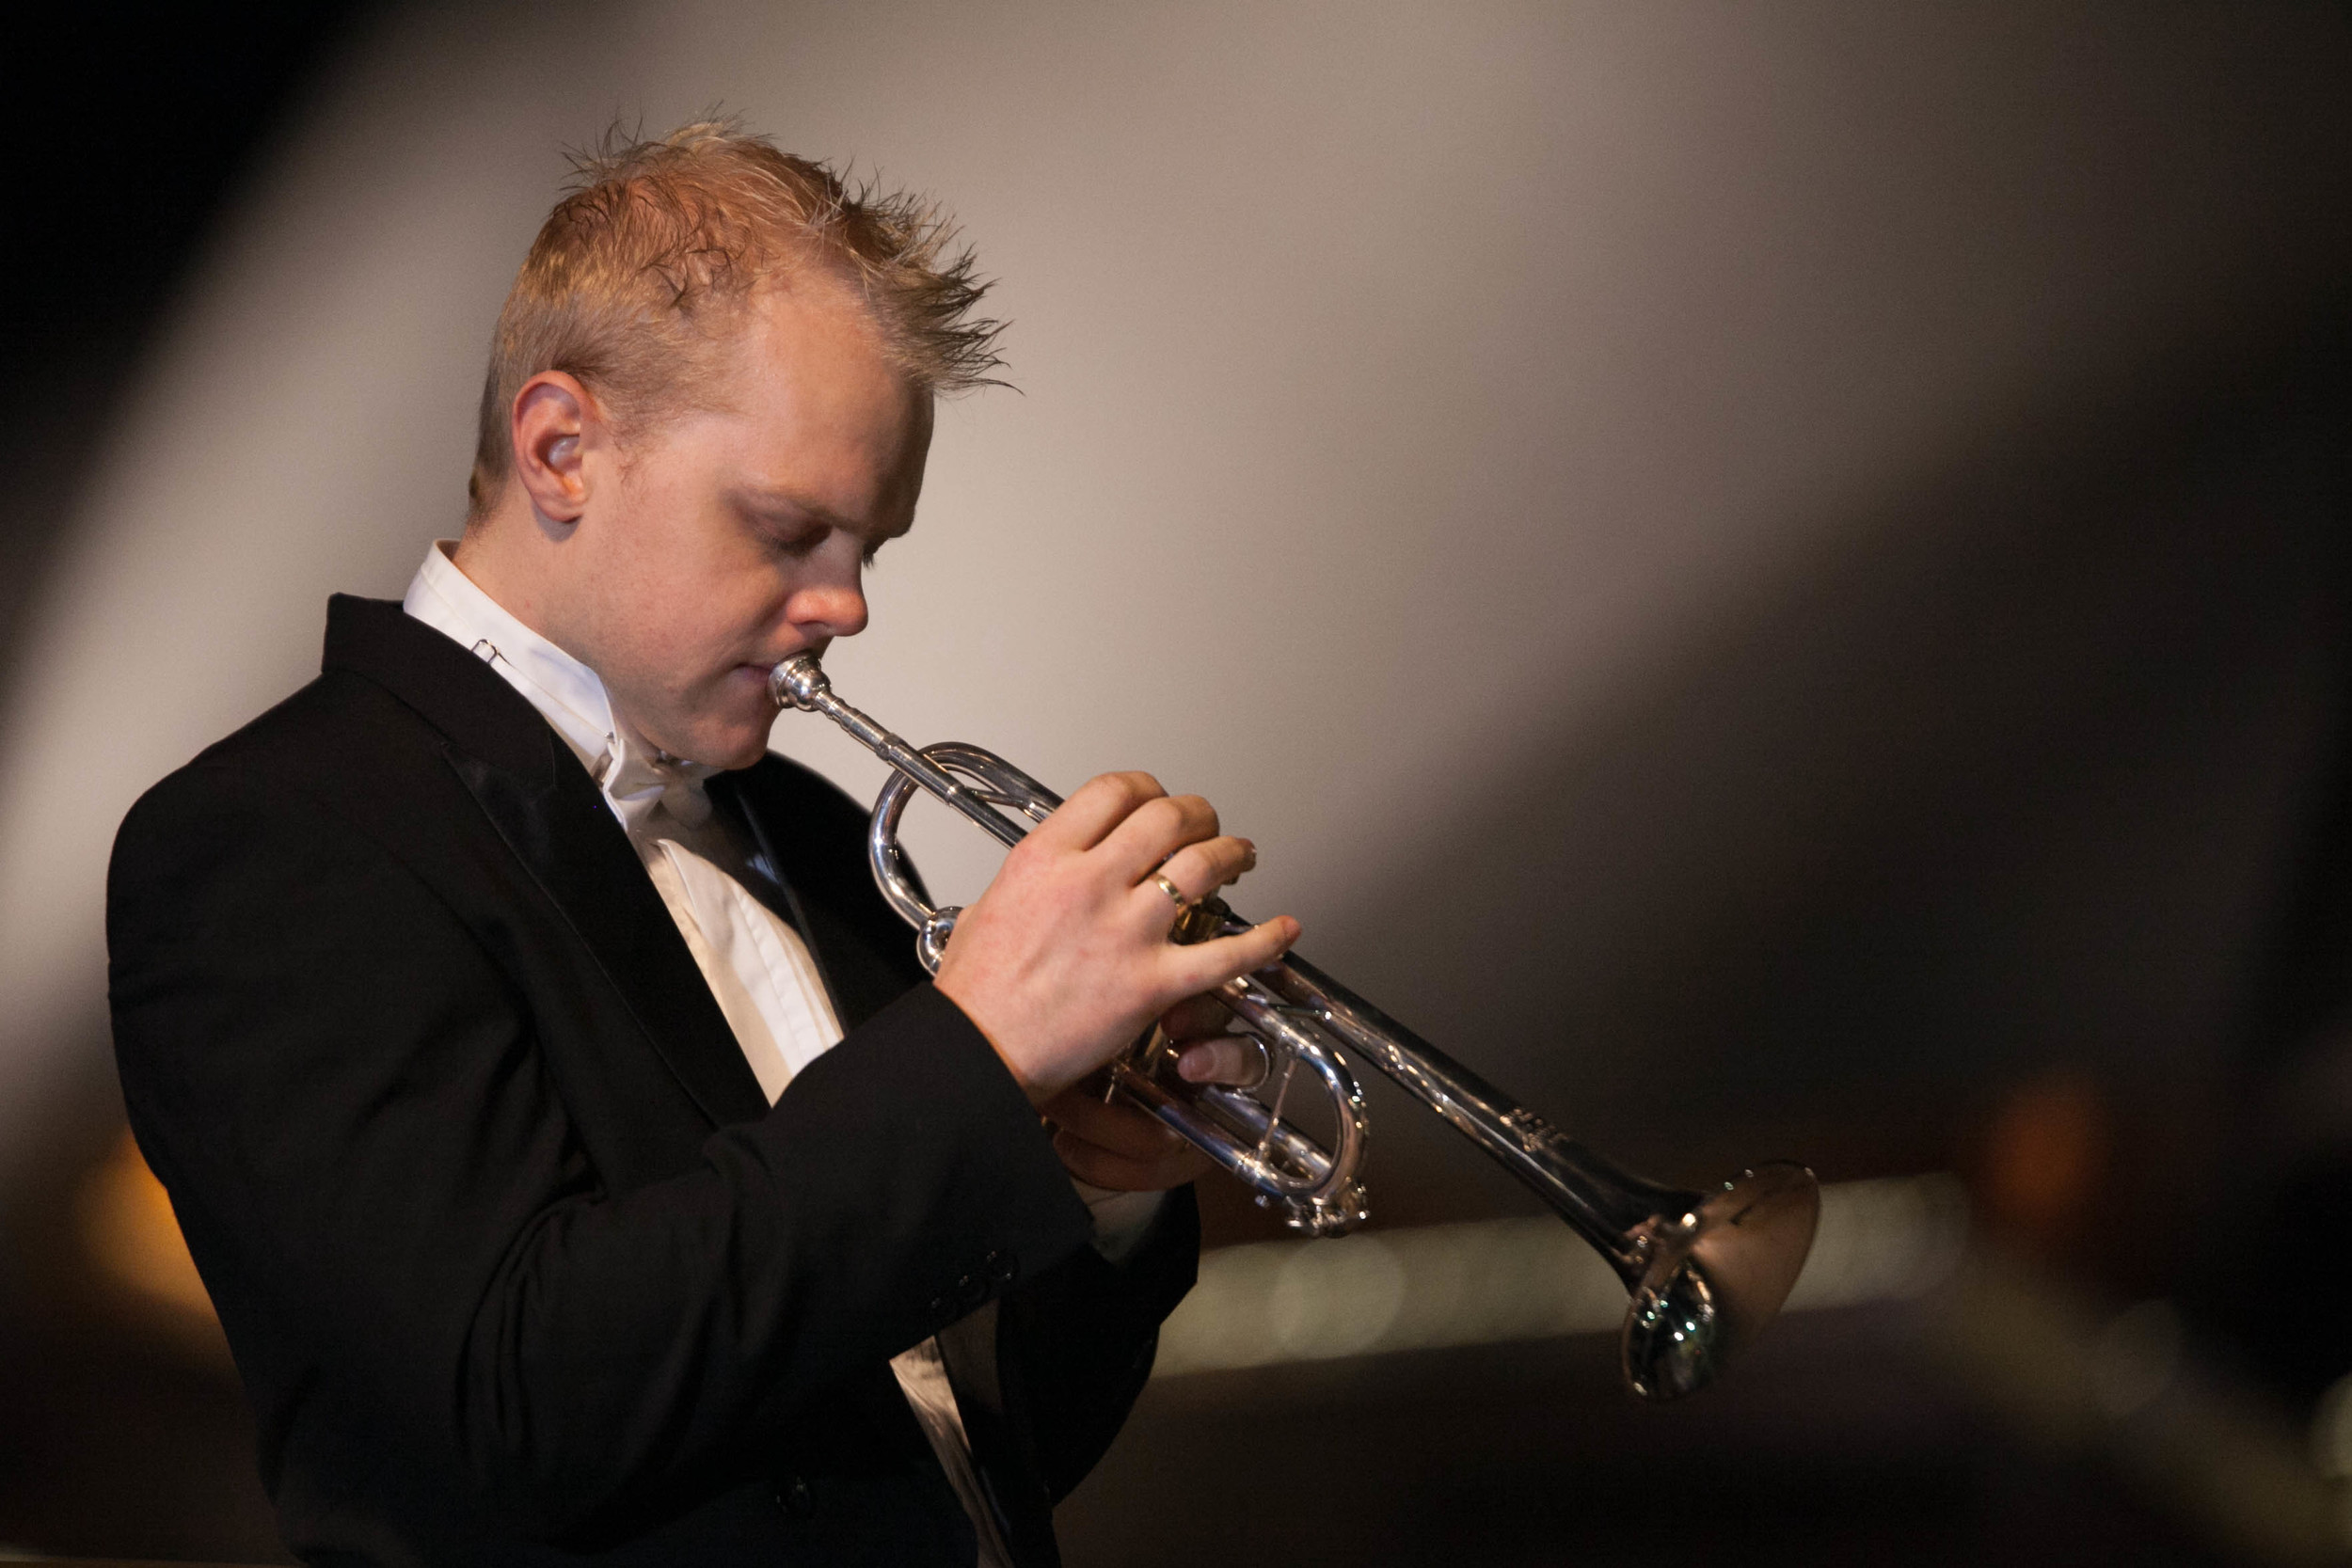 Phill O'Neill Trumpet player in front of the Sydney Opera House